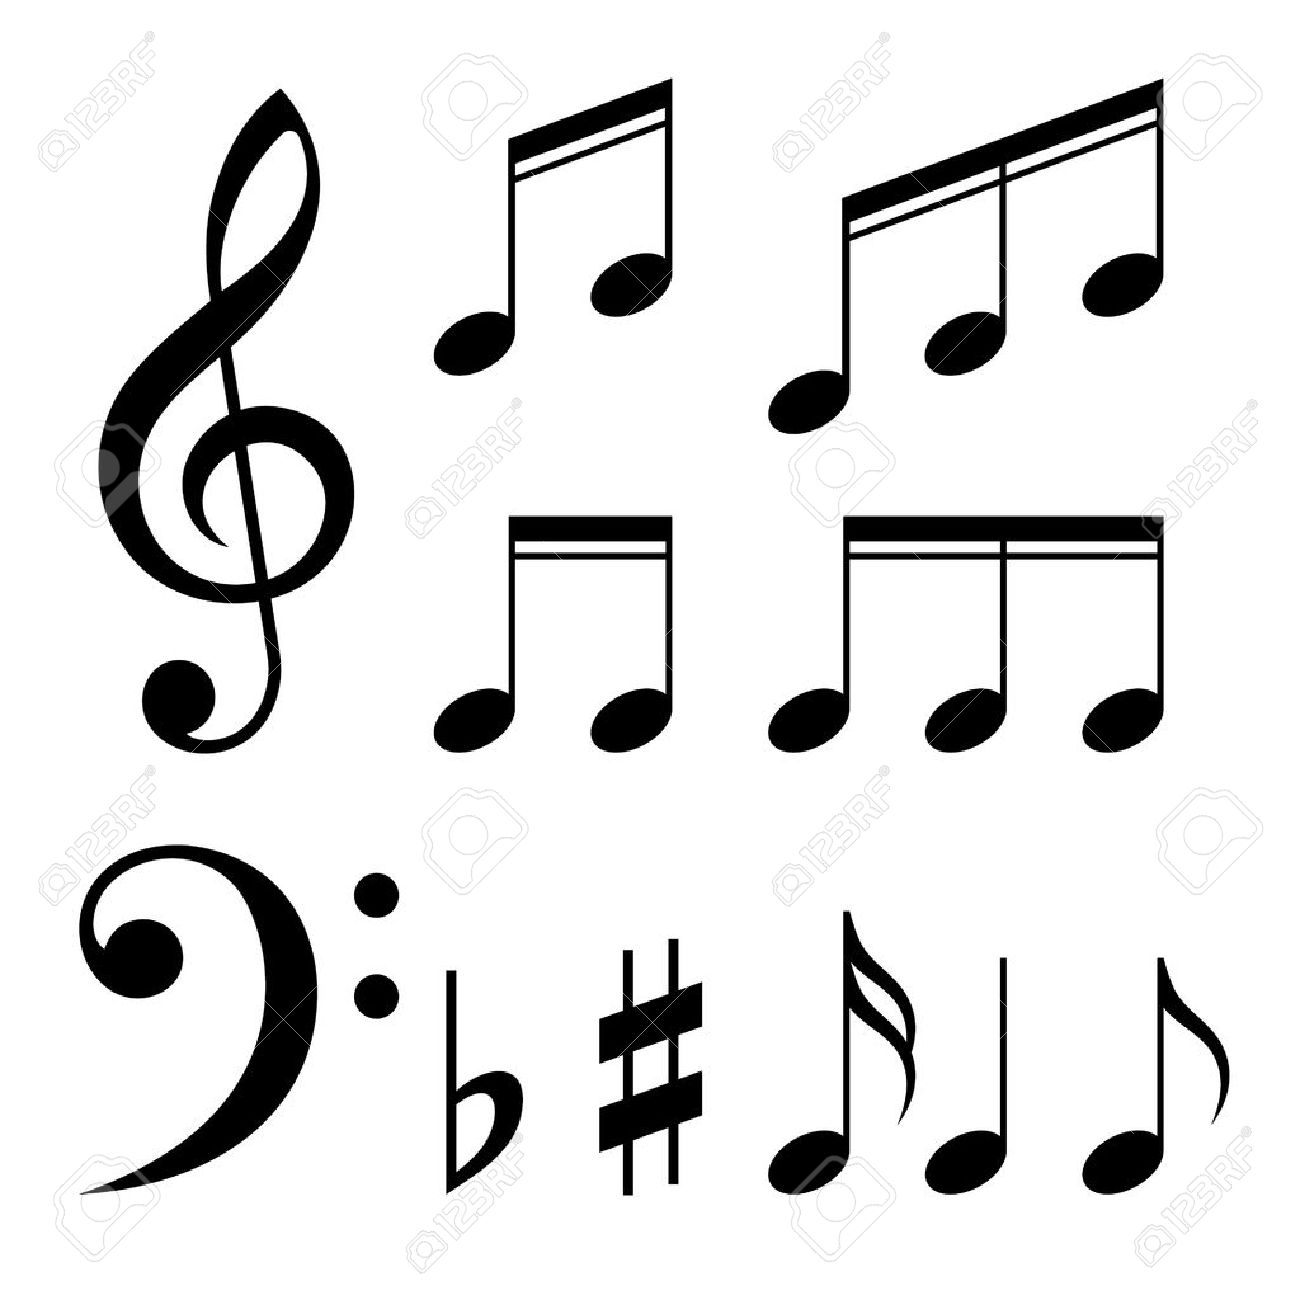 Music notes black and white free download best music notes black 1300x1300 set of music notes vector black and white silhouettes royalty buycottarizona Image collections